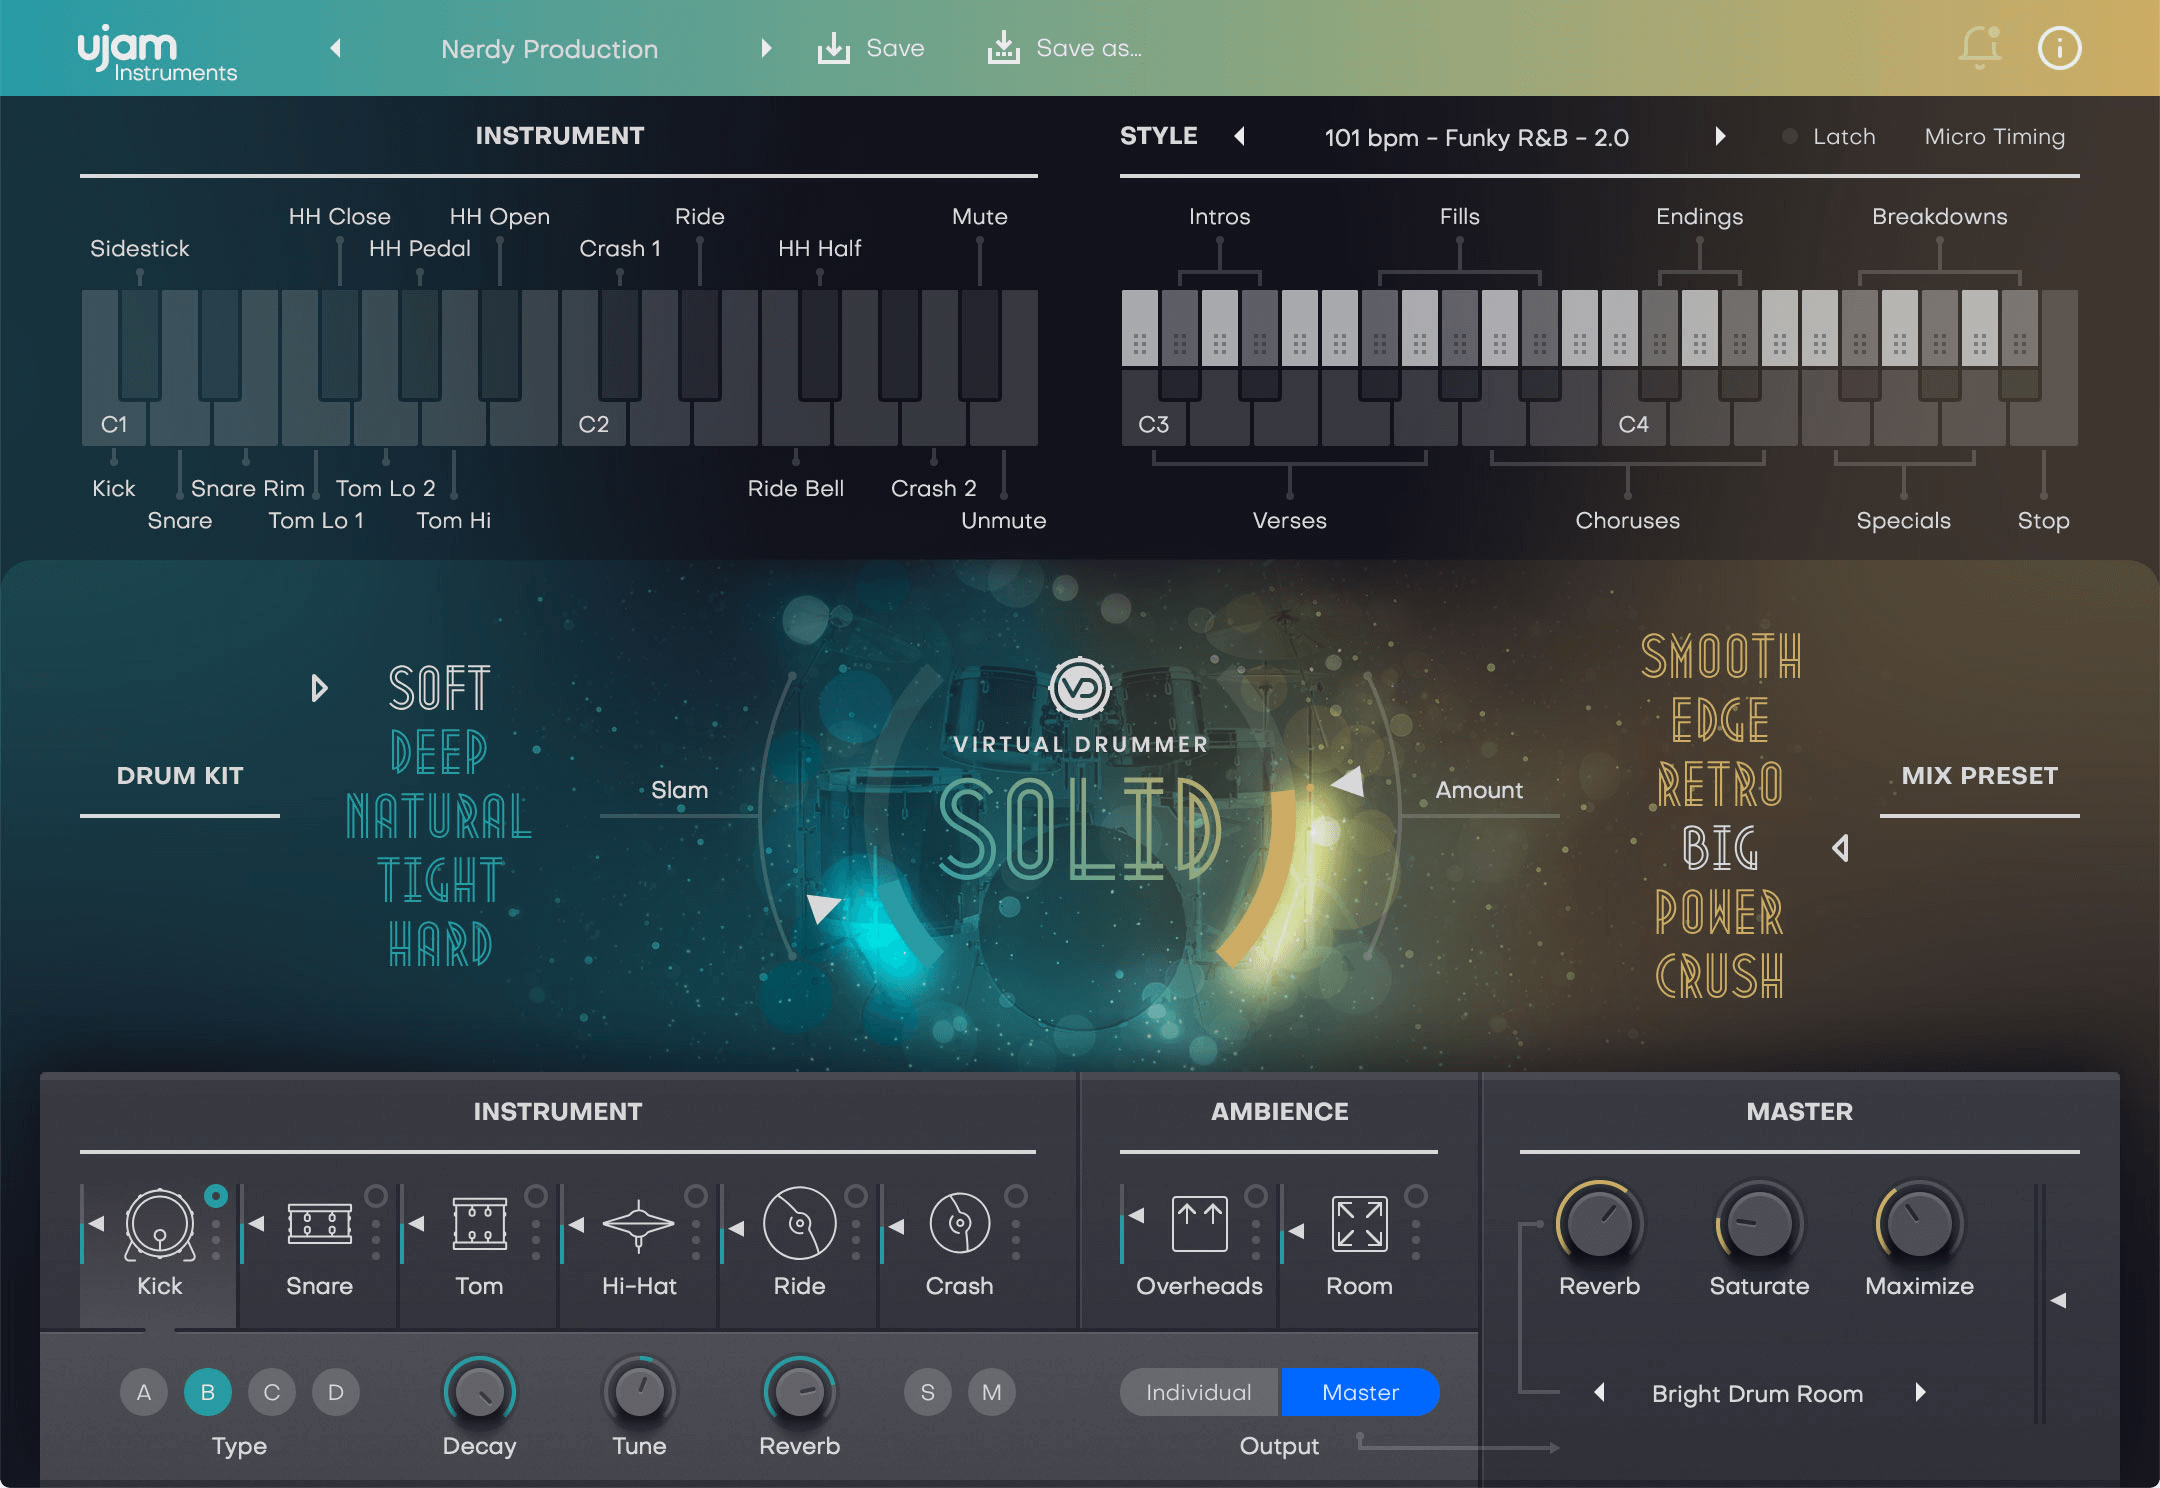 UJAM Virtual Drummer SOLID 2